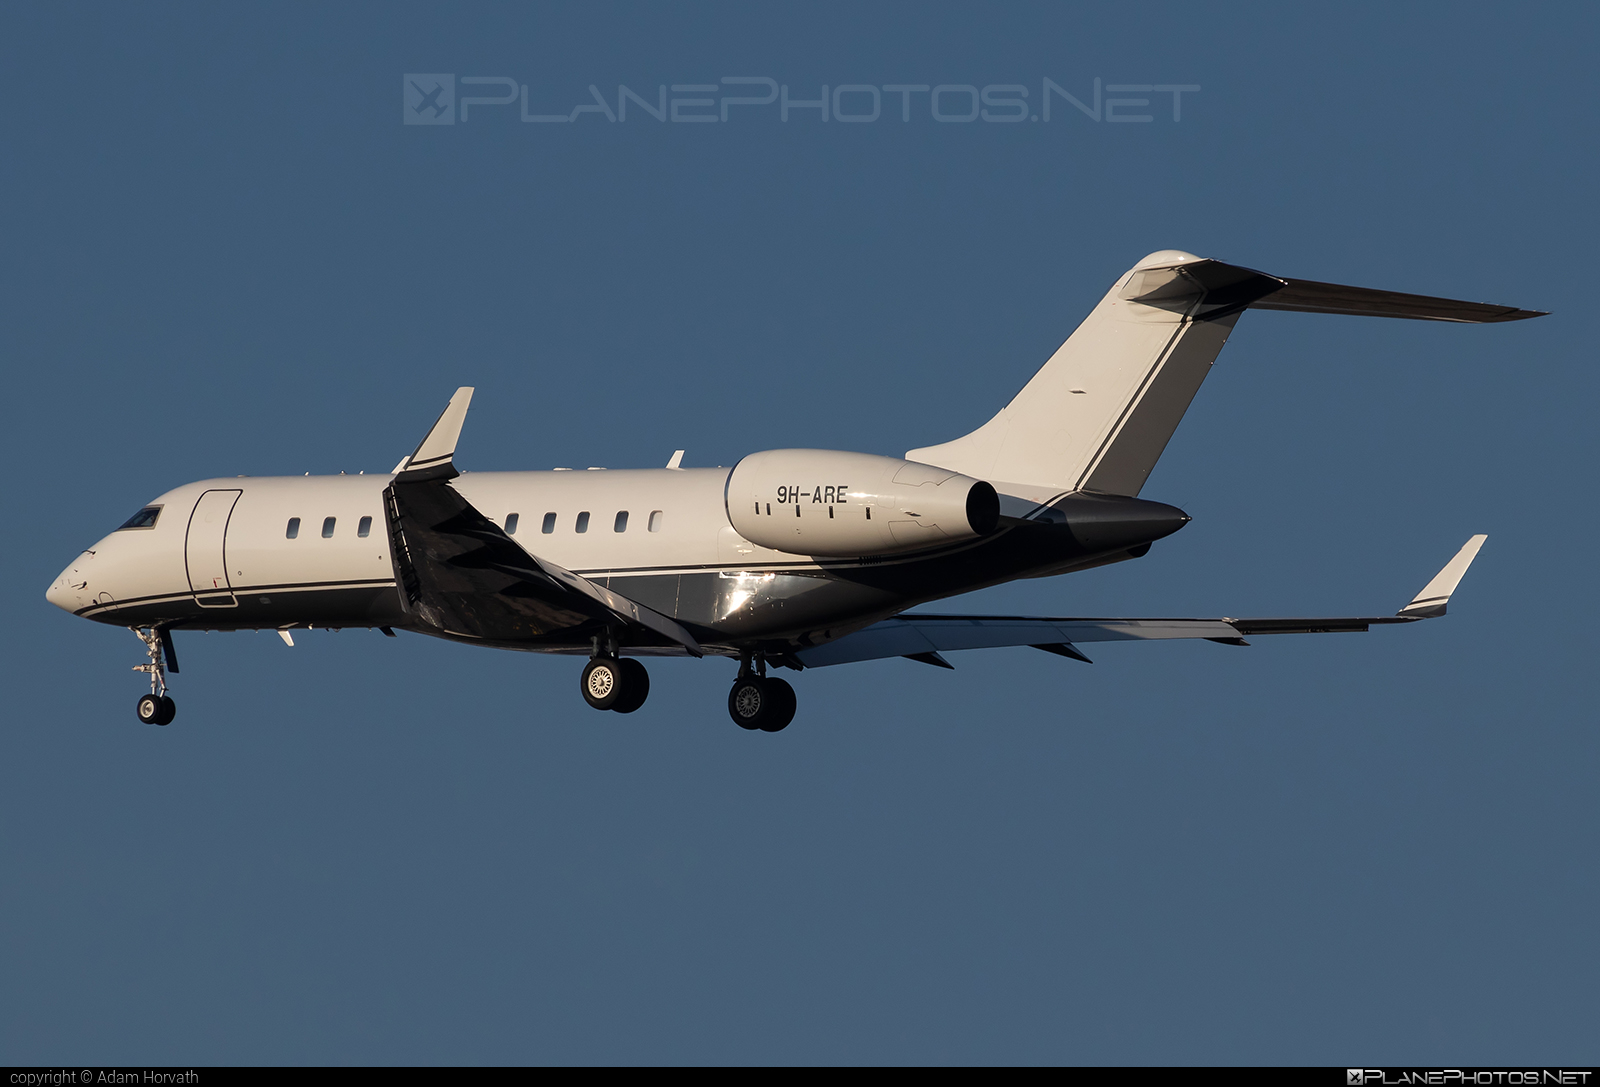 Bombardier Global 5000 (BD-700-1A11) - 9H-ARE operated by Albinati Aeronautics #albinatiaeronautics #bd7001a11 #bombardier #bombardierglobal5000 #global5000